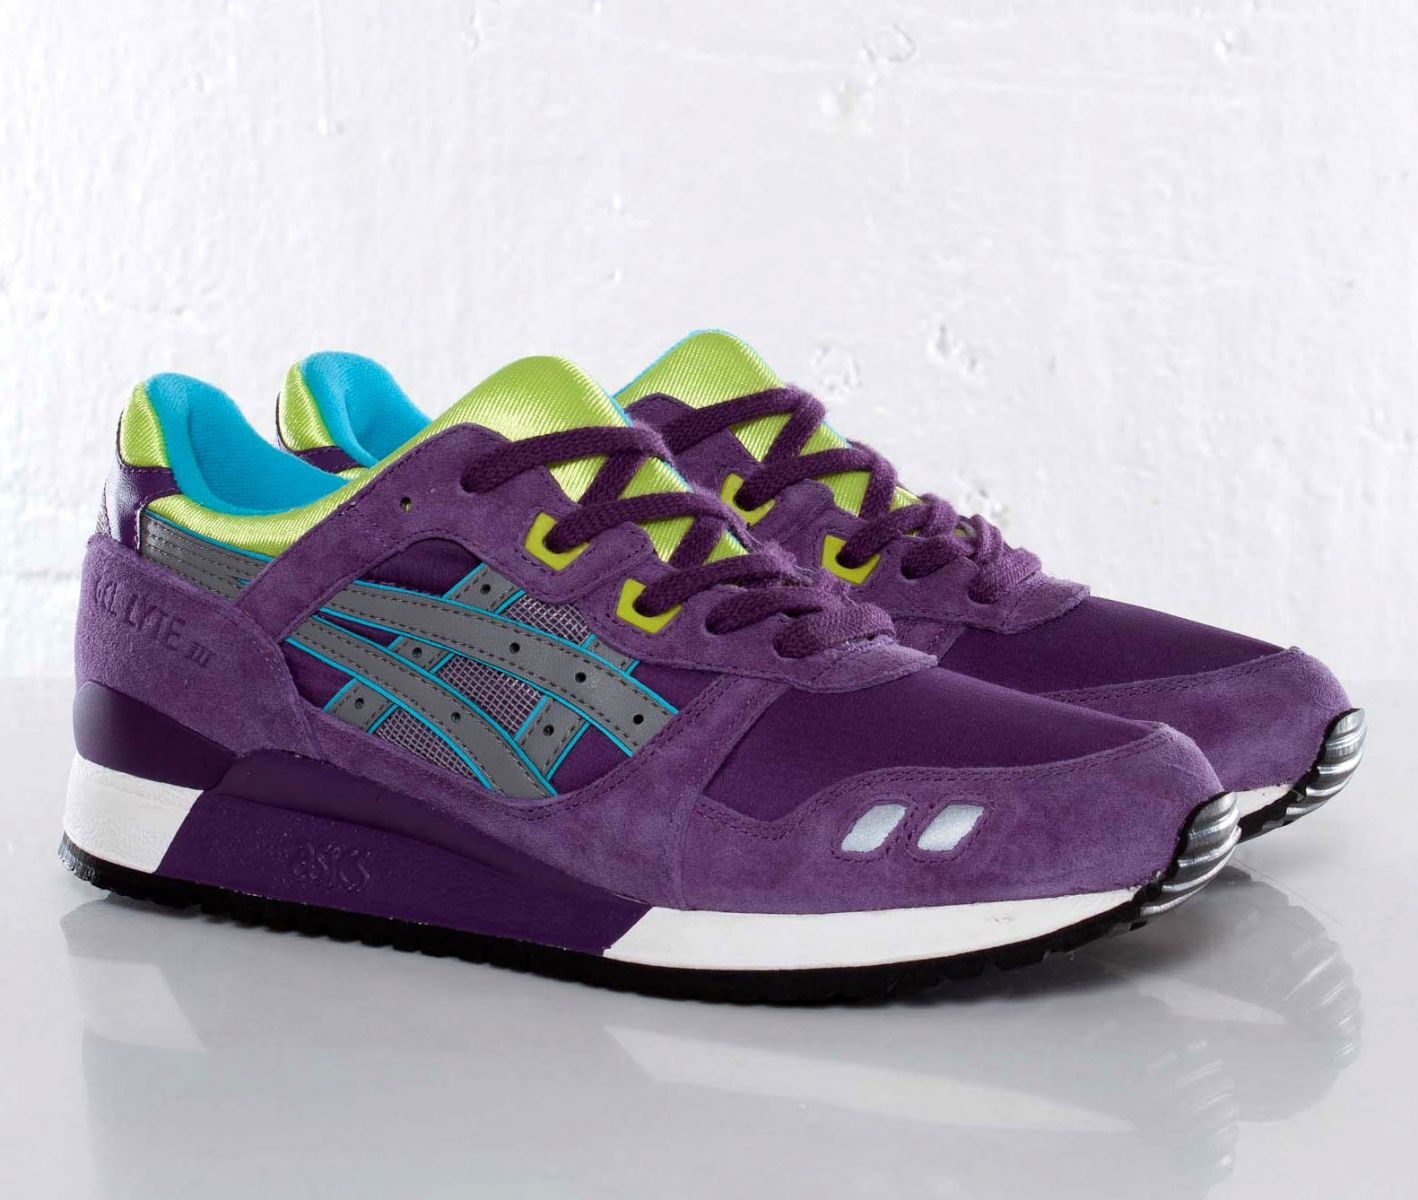 3d63e7aded13 ASICS Gel-Lyte III - Purple Grey